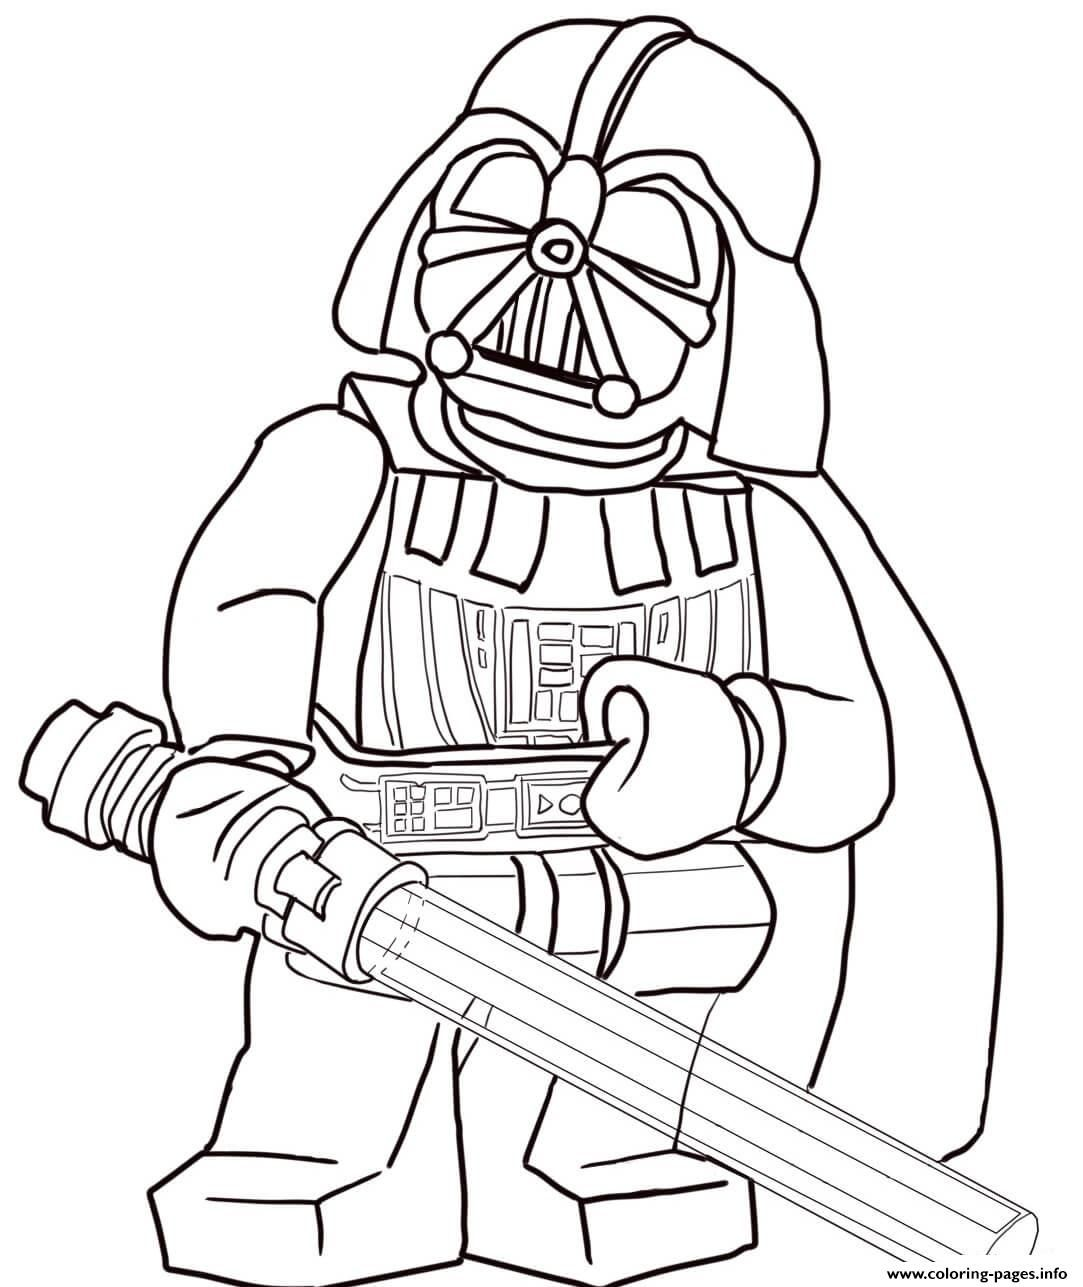 Print lego star wars darth vader coloring pages fiesta birthday